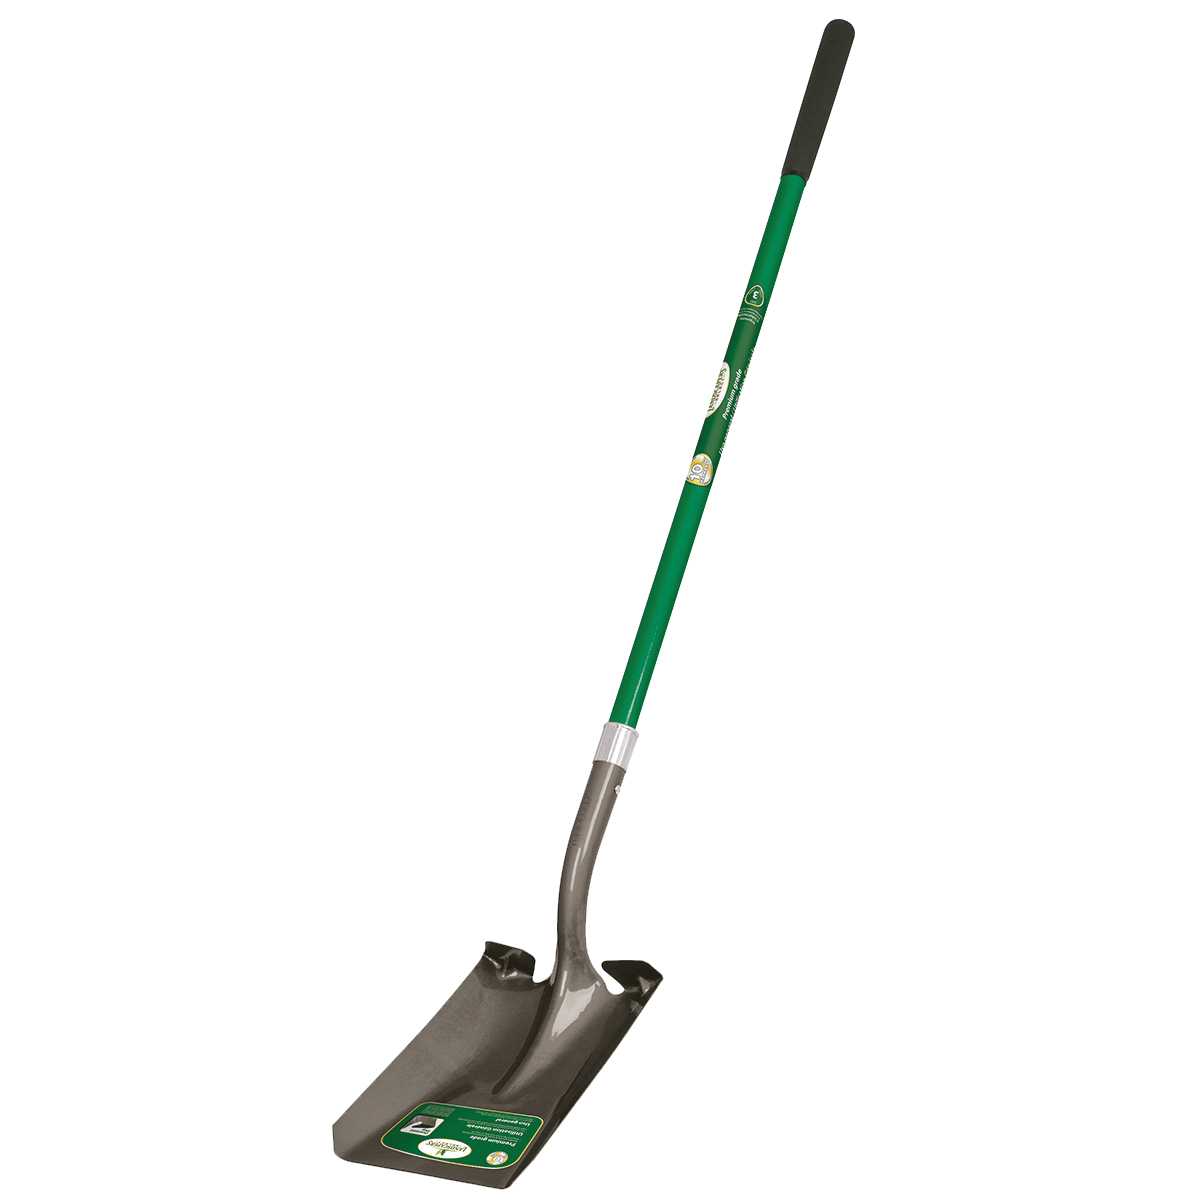 Picture of Landscapers Select 34598 Square Point Shovel, Fiberglass Handle, Ergonomic Handle, 47 in L Handle